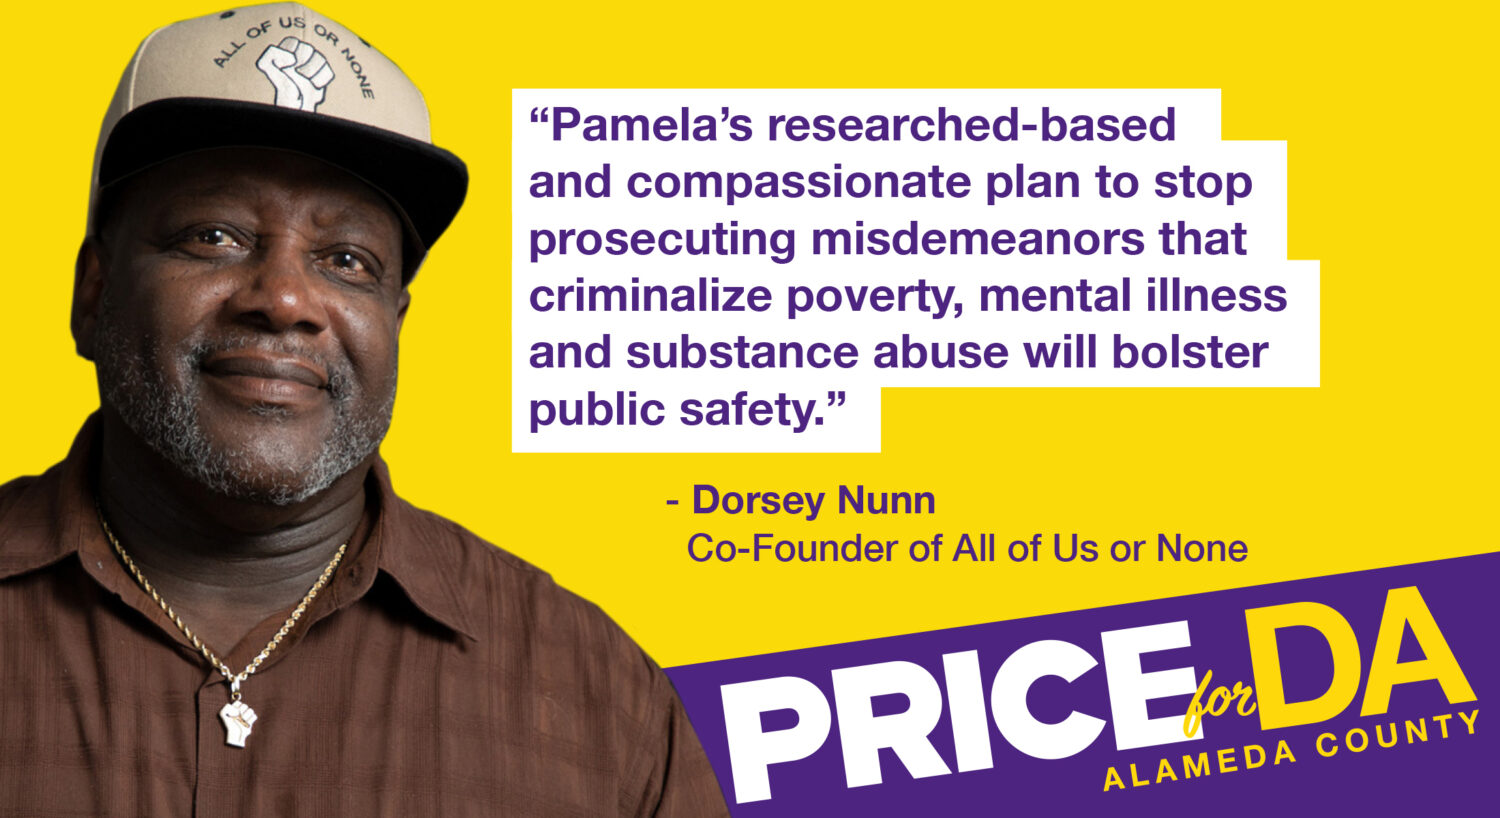 Dorsey Nunn, Co-Founder of All of Us or None, endorses Pamela Price for Alameda County District Attorney